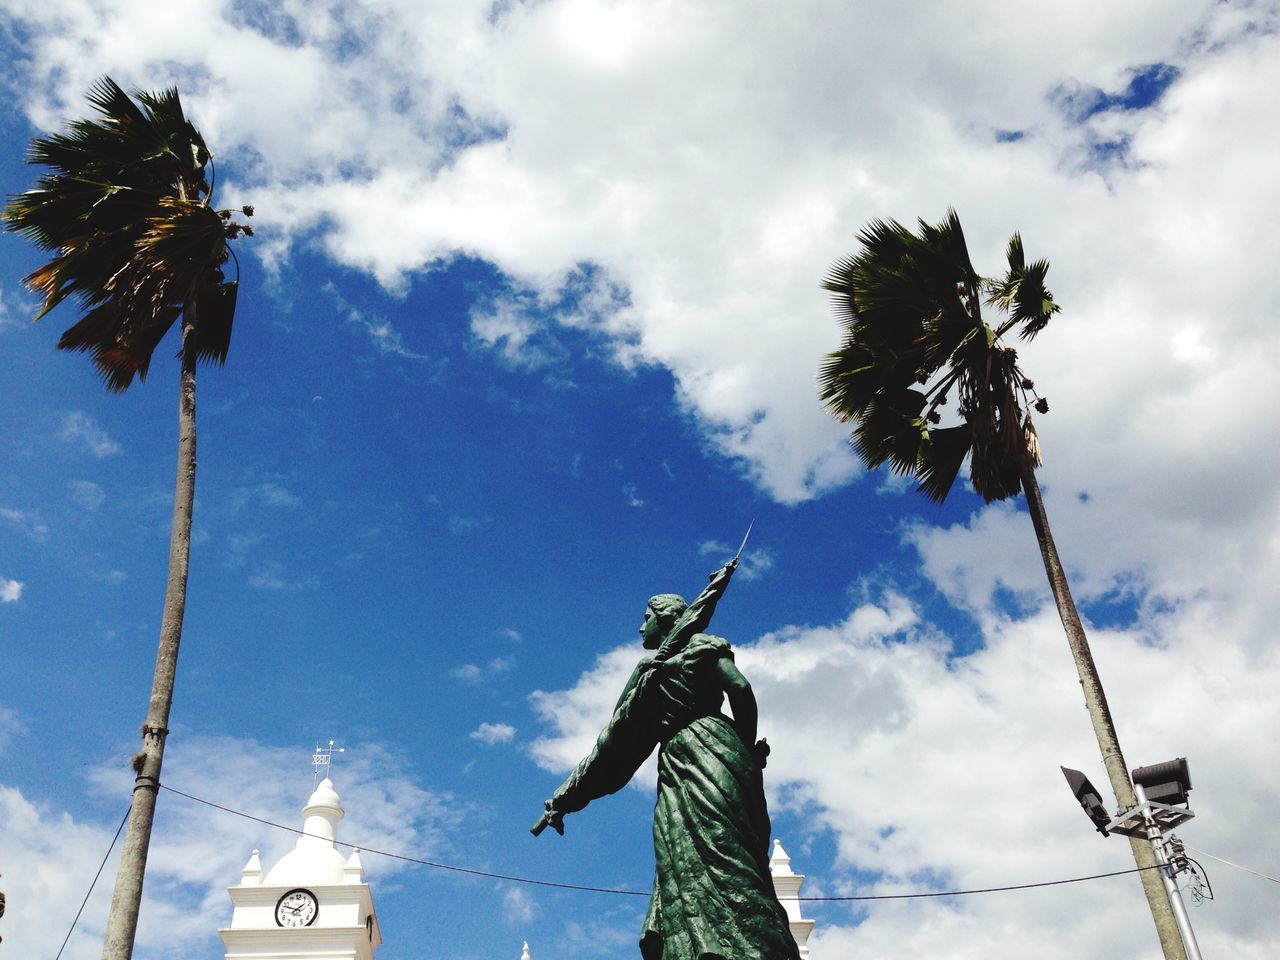 Clouds Policarpa Guaduas Colombia Statue IPhoneography Heroine Wind Palm Trees